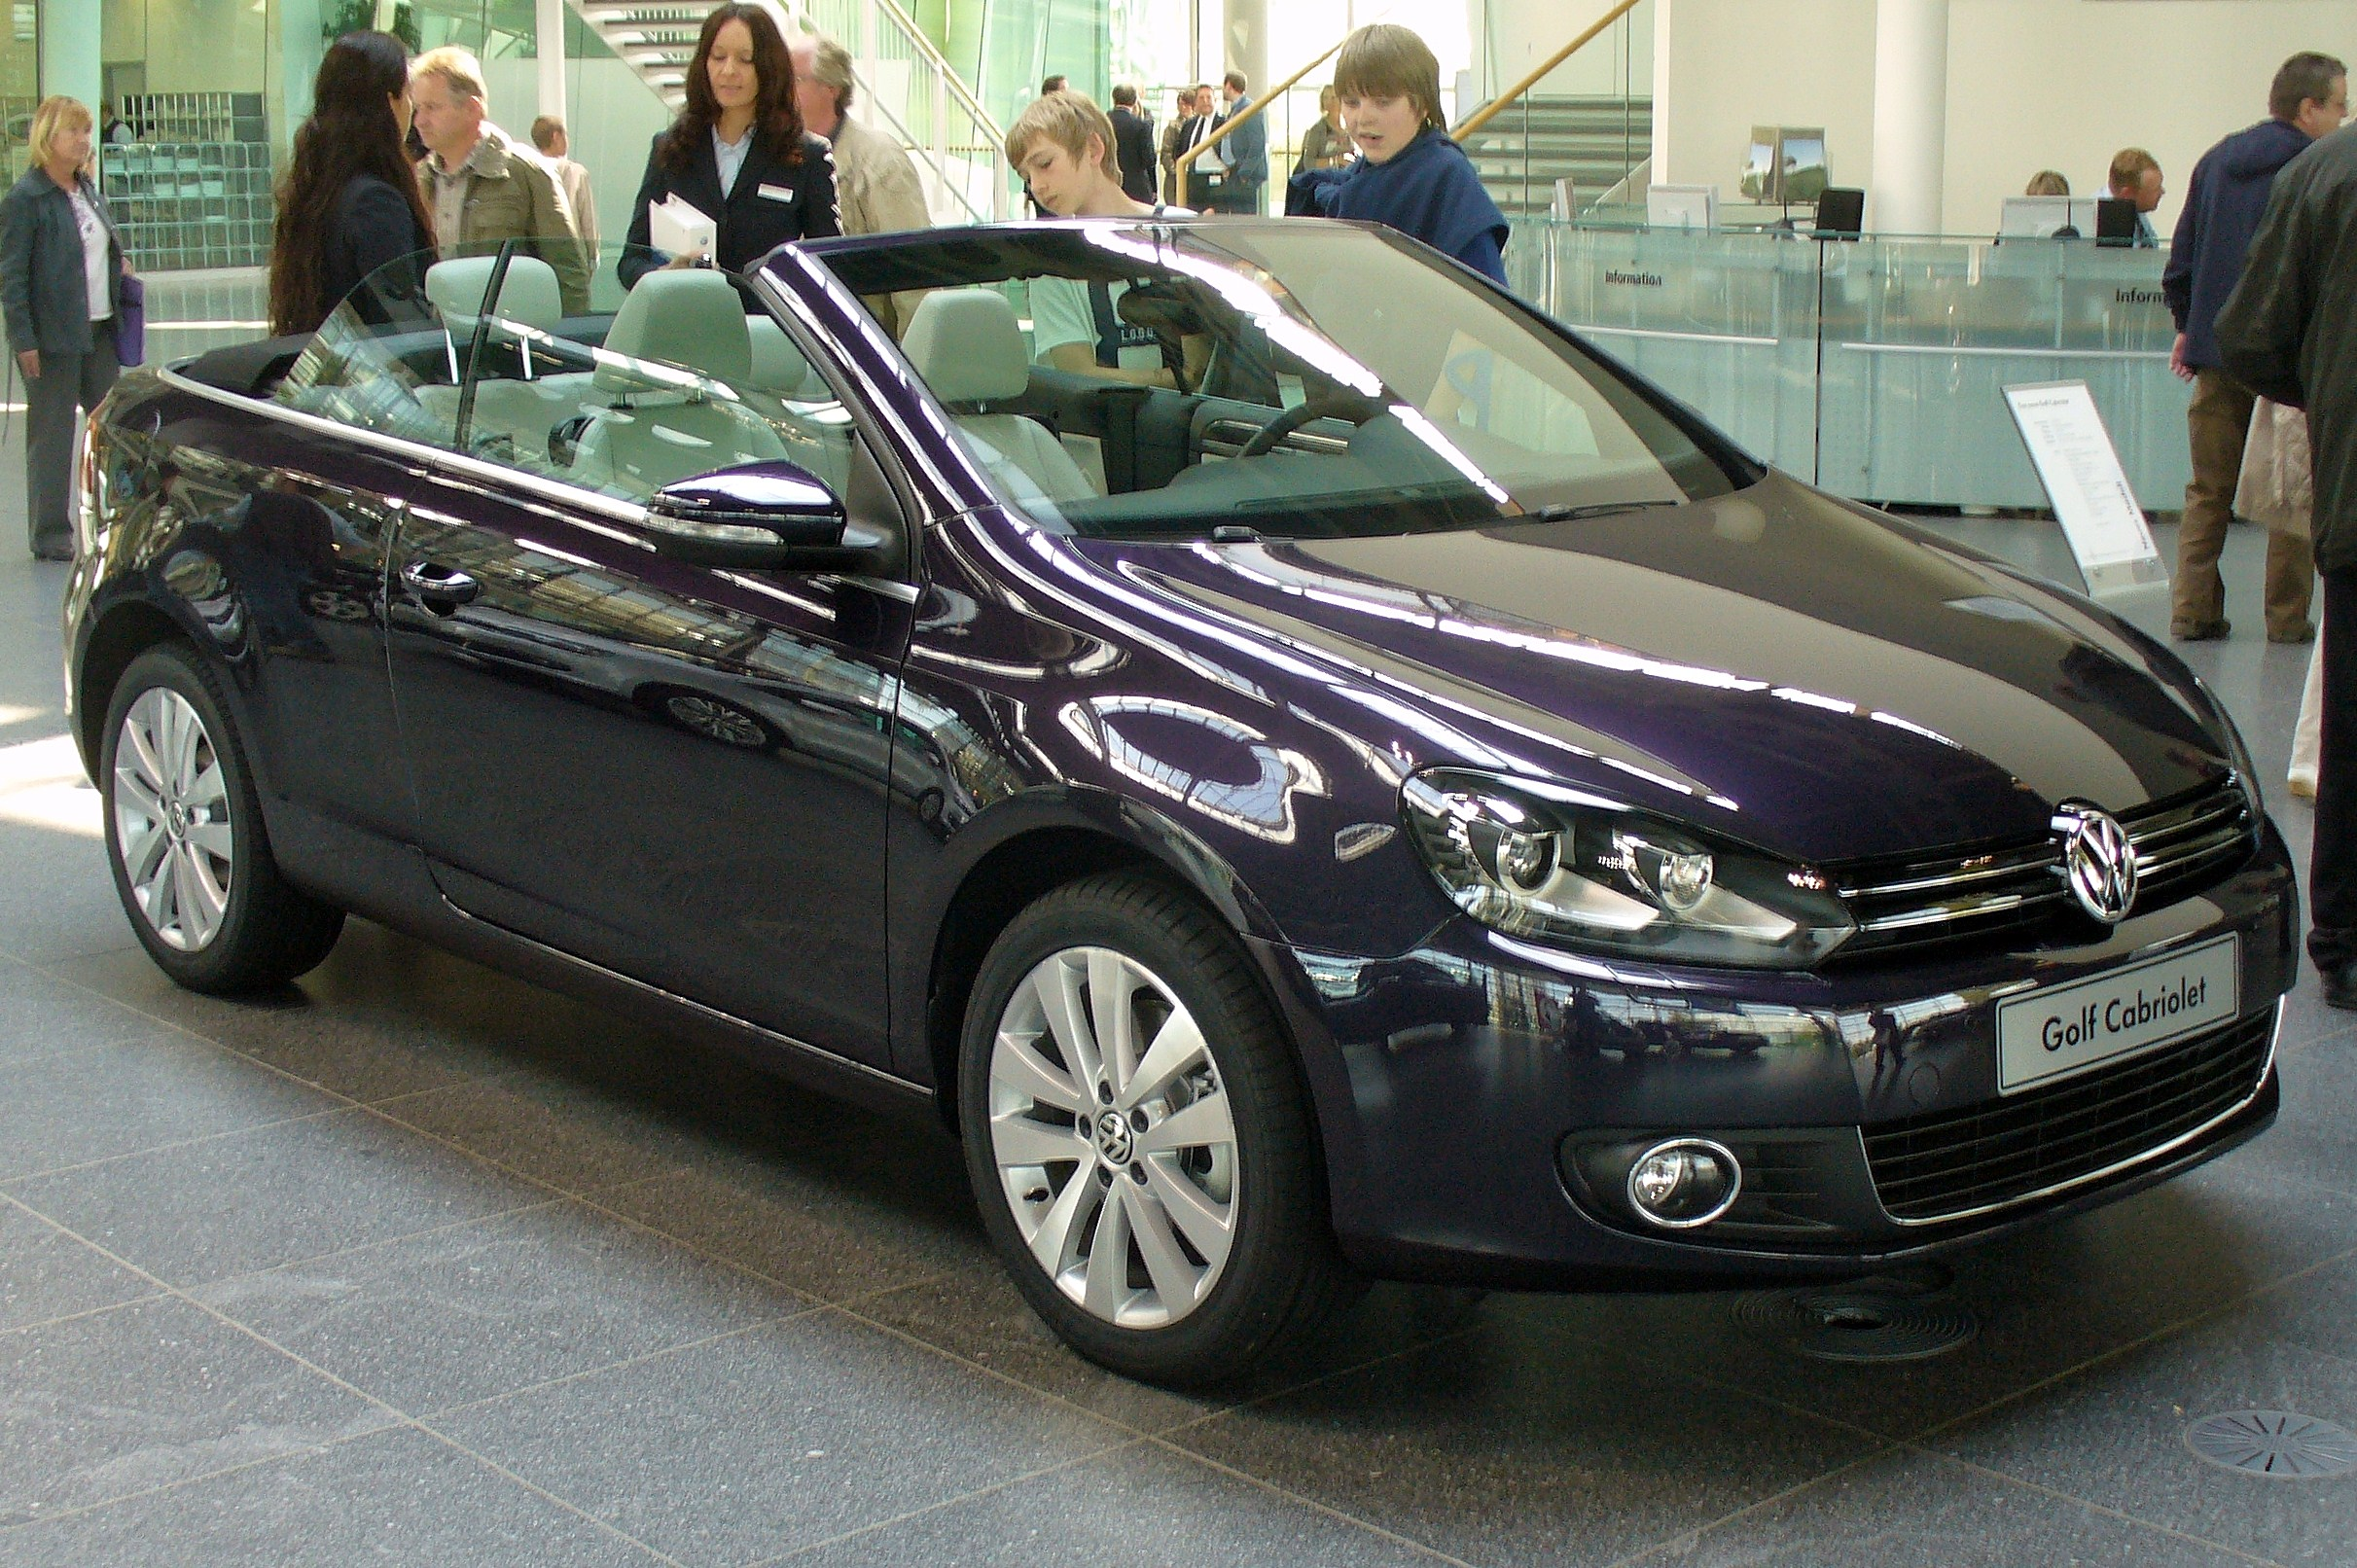 file vw golf vi cabriolet 1 4 tsi deeppurple jpg wikimedia commons. Black Bedroom Furniture Sets. Home Design Ideas